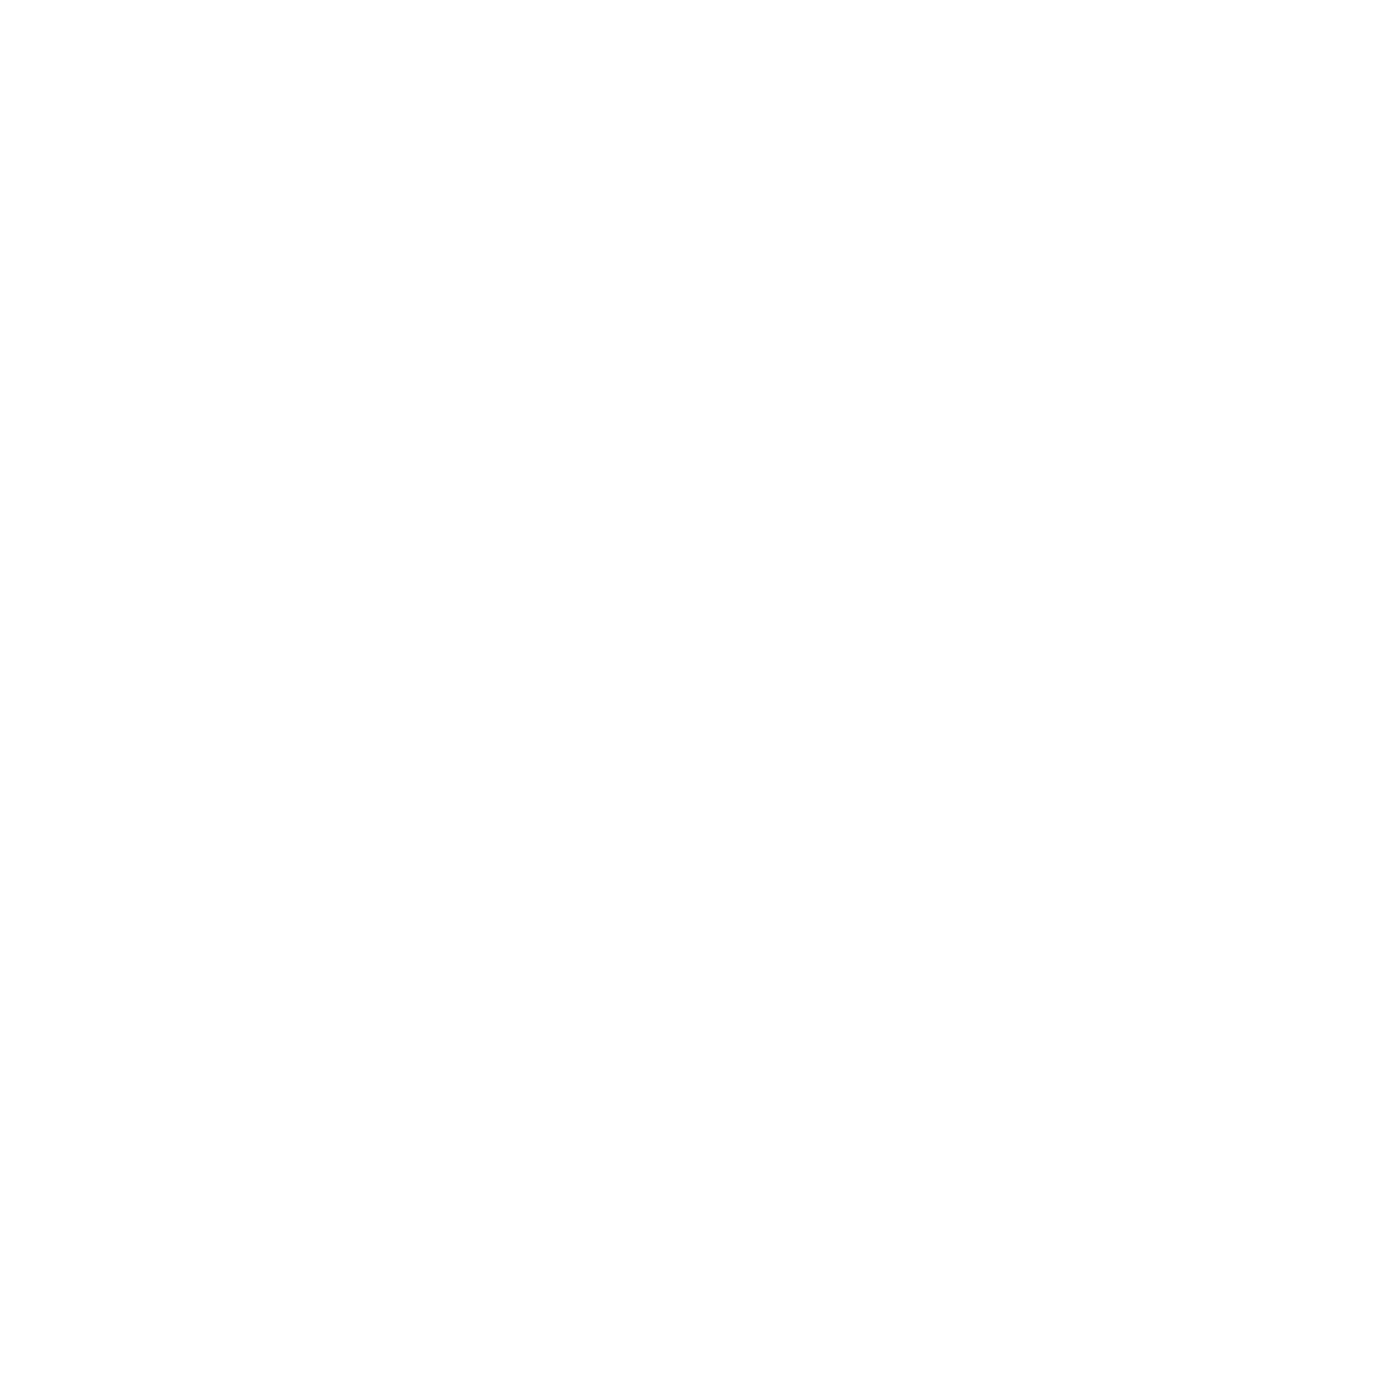 House icons that links to the Community Development Department web-page.